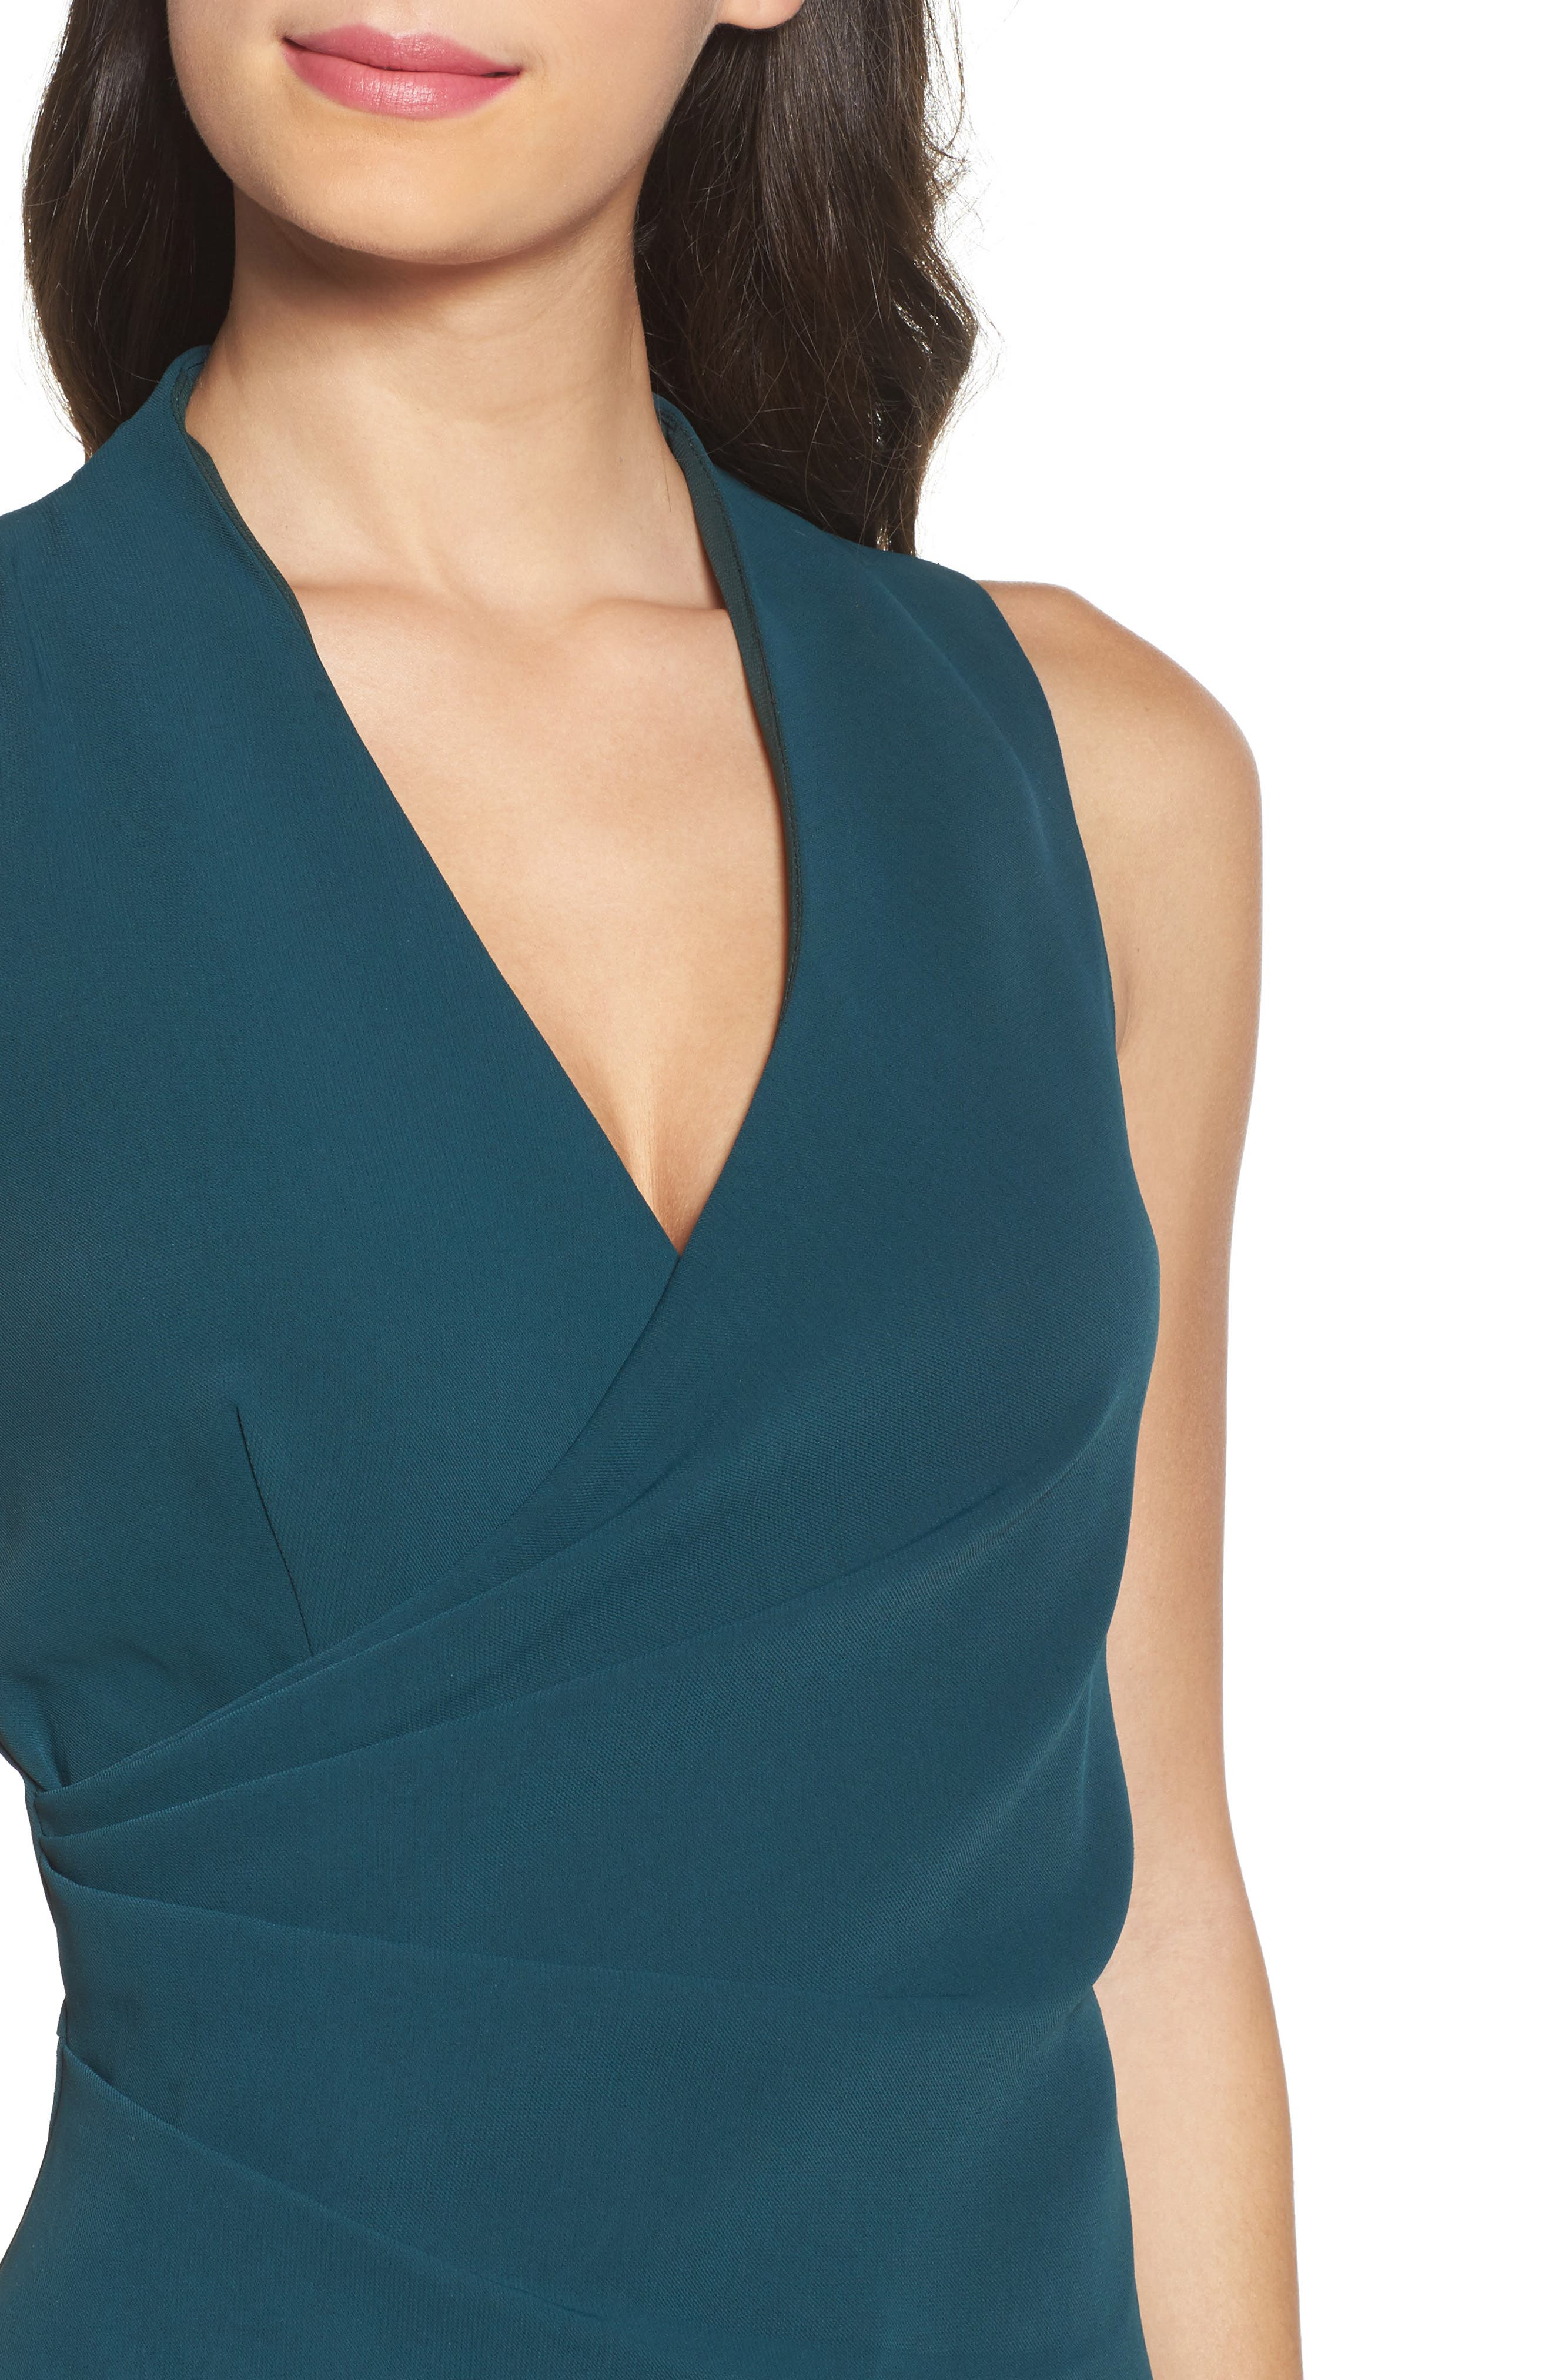 Teri Faux Wrap Sheath Dress,                             Alternate thumbnail 4, color,                             401